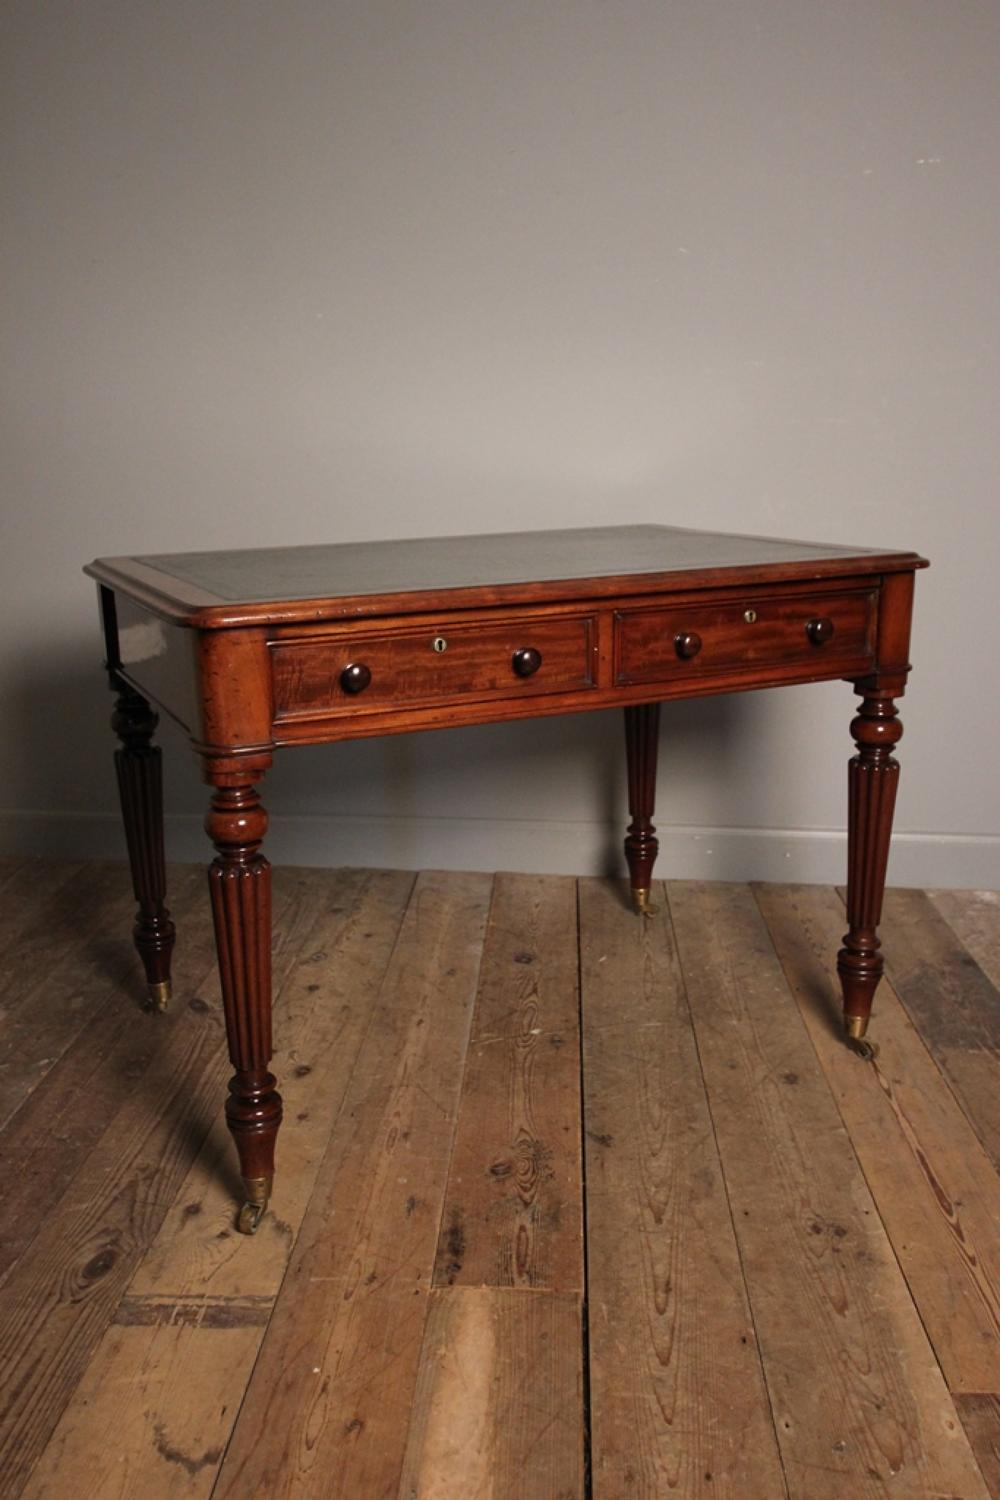 T. Willson 19th C. Mahogany Library Writing Table